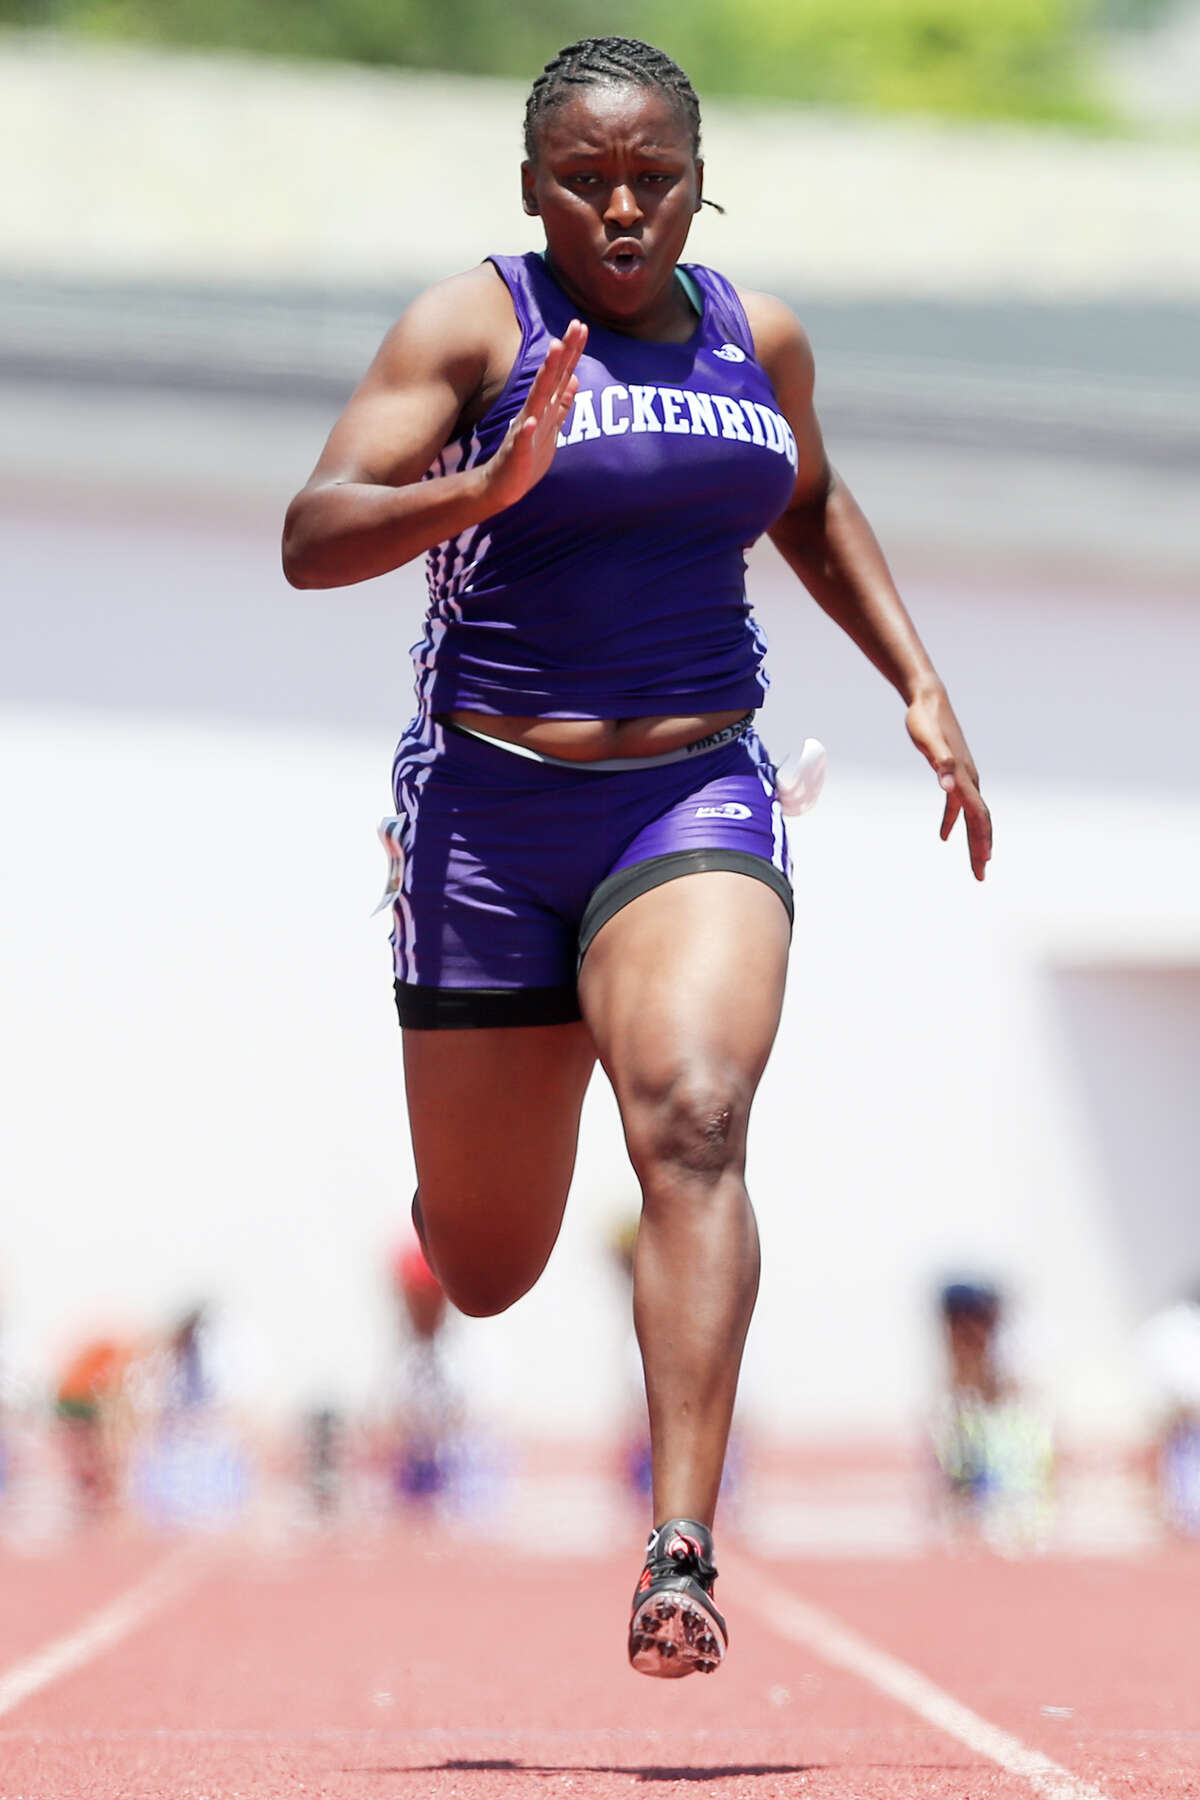 Brackenridge's Tevis Thomas approaches the finish line of the 5A 100-meter dash during the Region IV-5A and Region IV-6A Track and Field meet at Alamo Stadium on Saturday, May 2, 2015. Thomas won the event with a time of 12.16 seconds. She also took second in the 200-meter dash with a time of 24.99 seconds. MARVIN PFEIFFER/ mpfeiffer@express-news.net